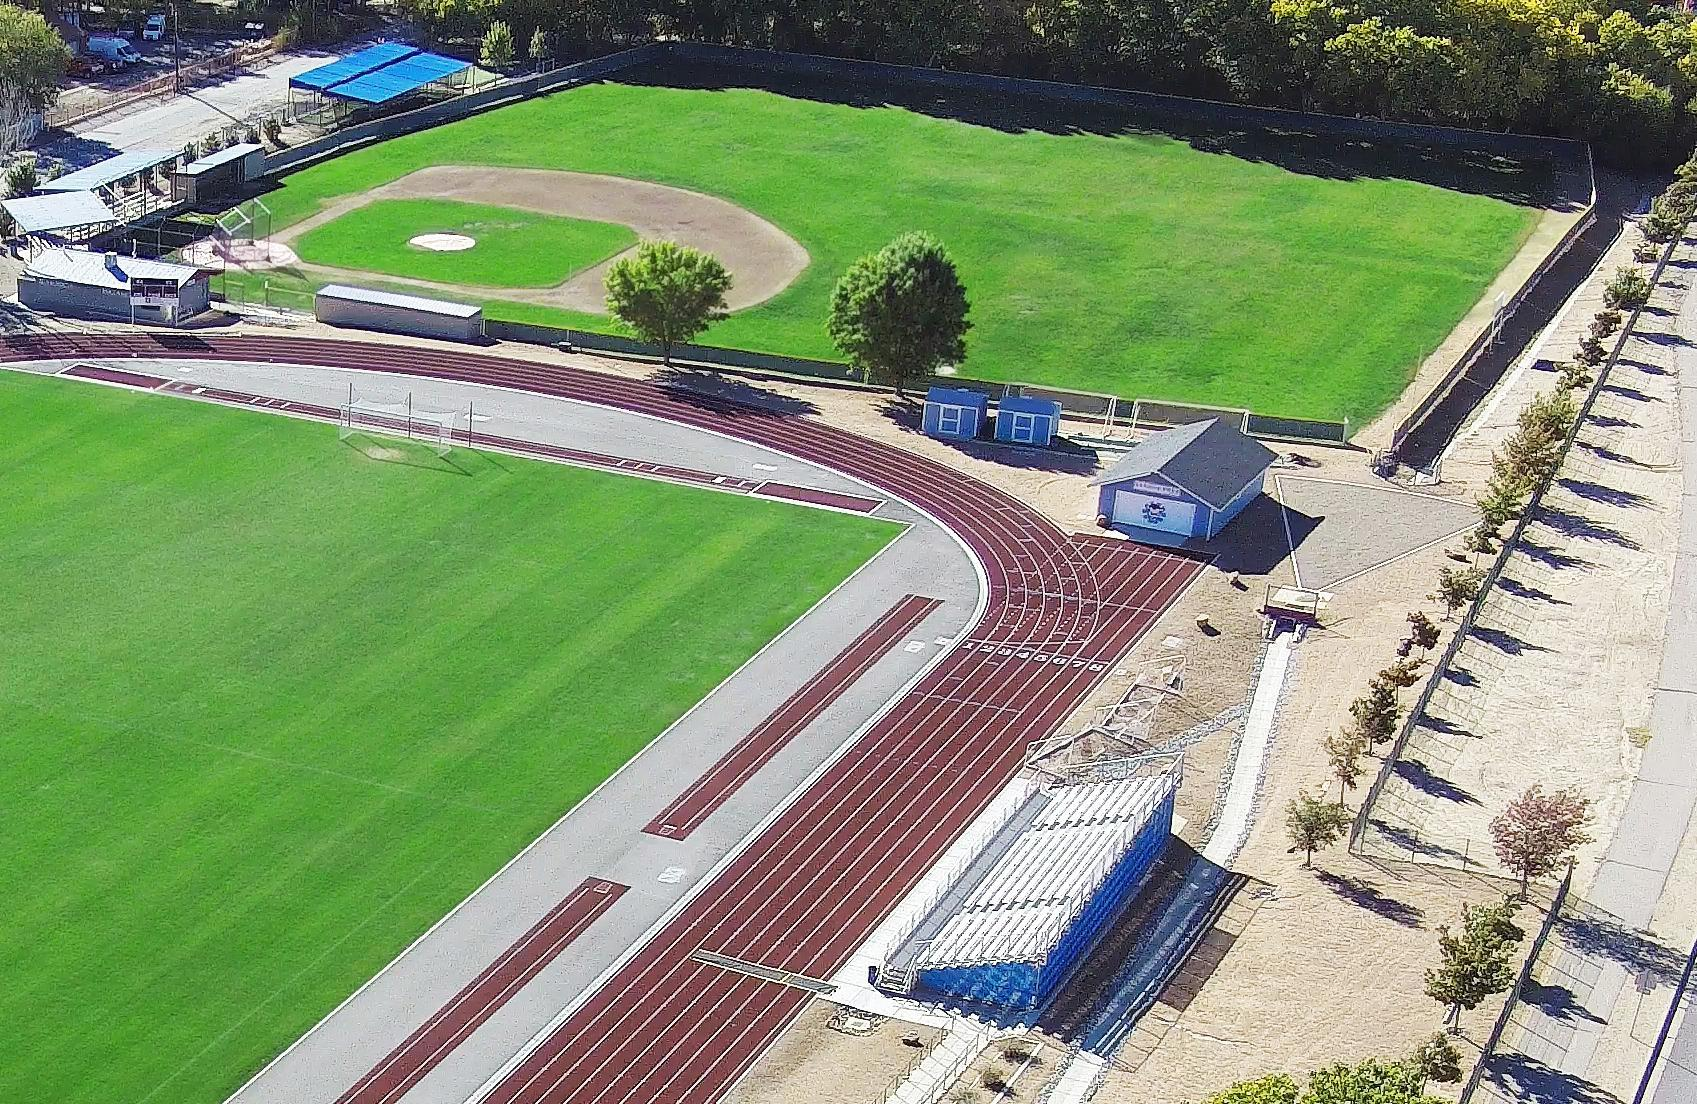 Aerial view of Duran Family Track and Soccer Stadium